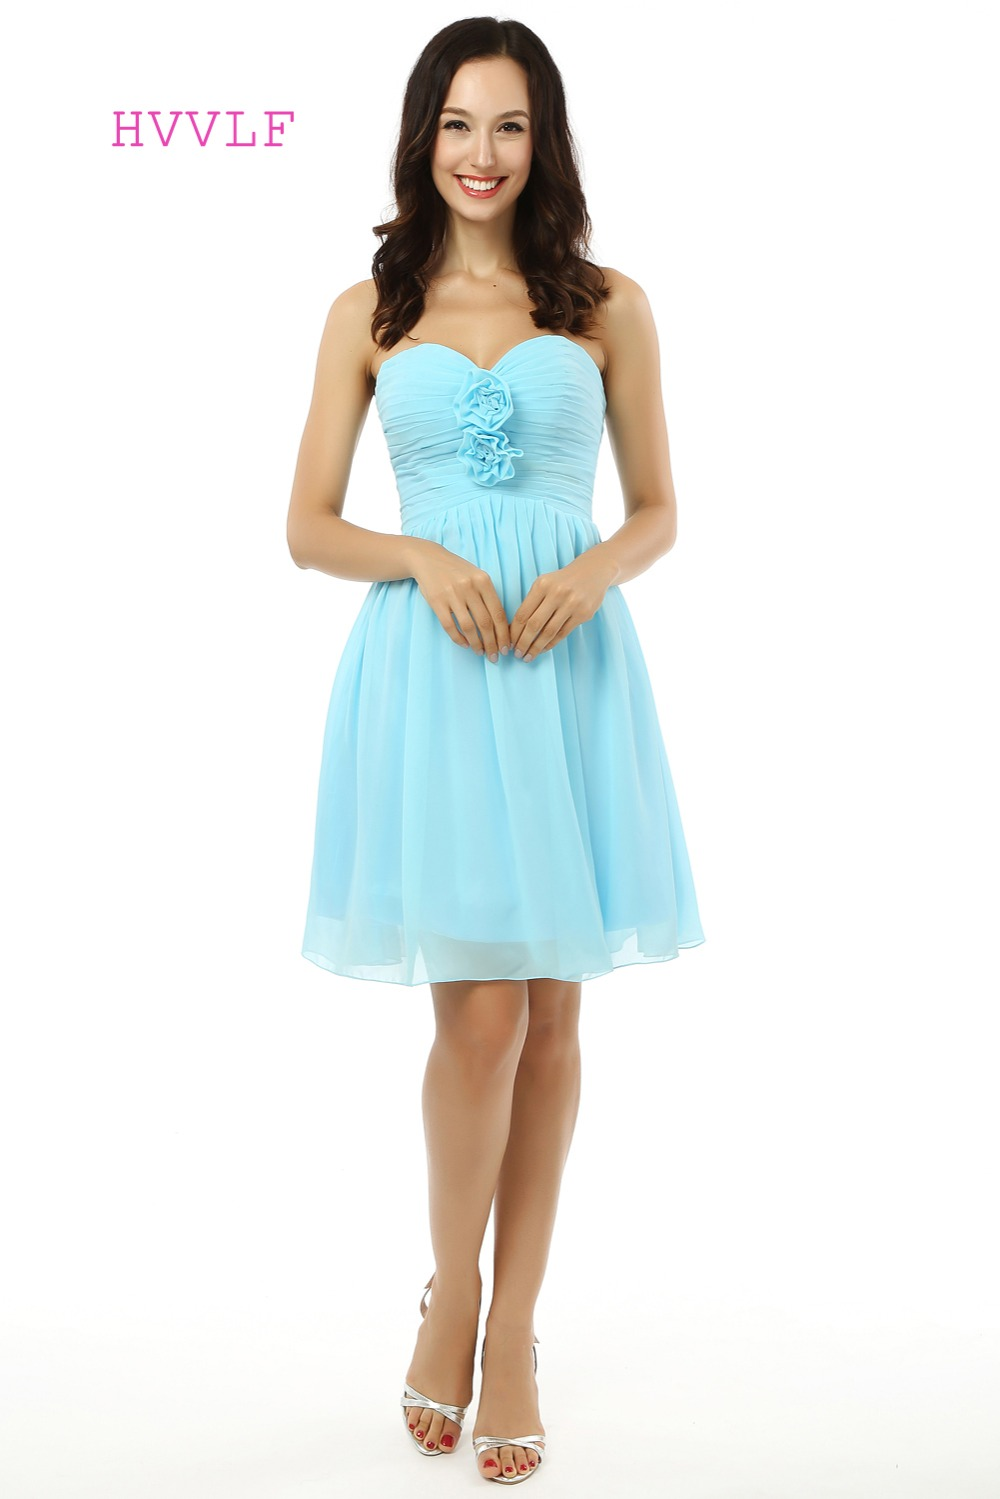 HVVLF 2017 Cheap Bridesmaid Dresses Under 50 A-line Sweetheart Short Mini Chiffon Turquoise Wedding Party Dresses